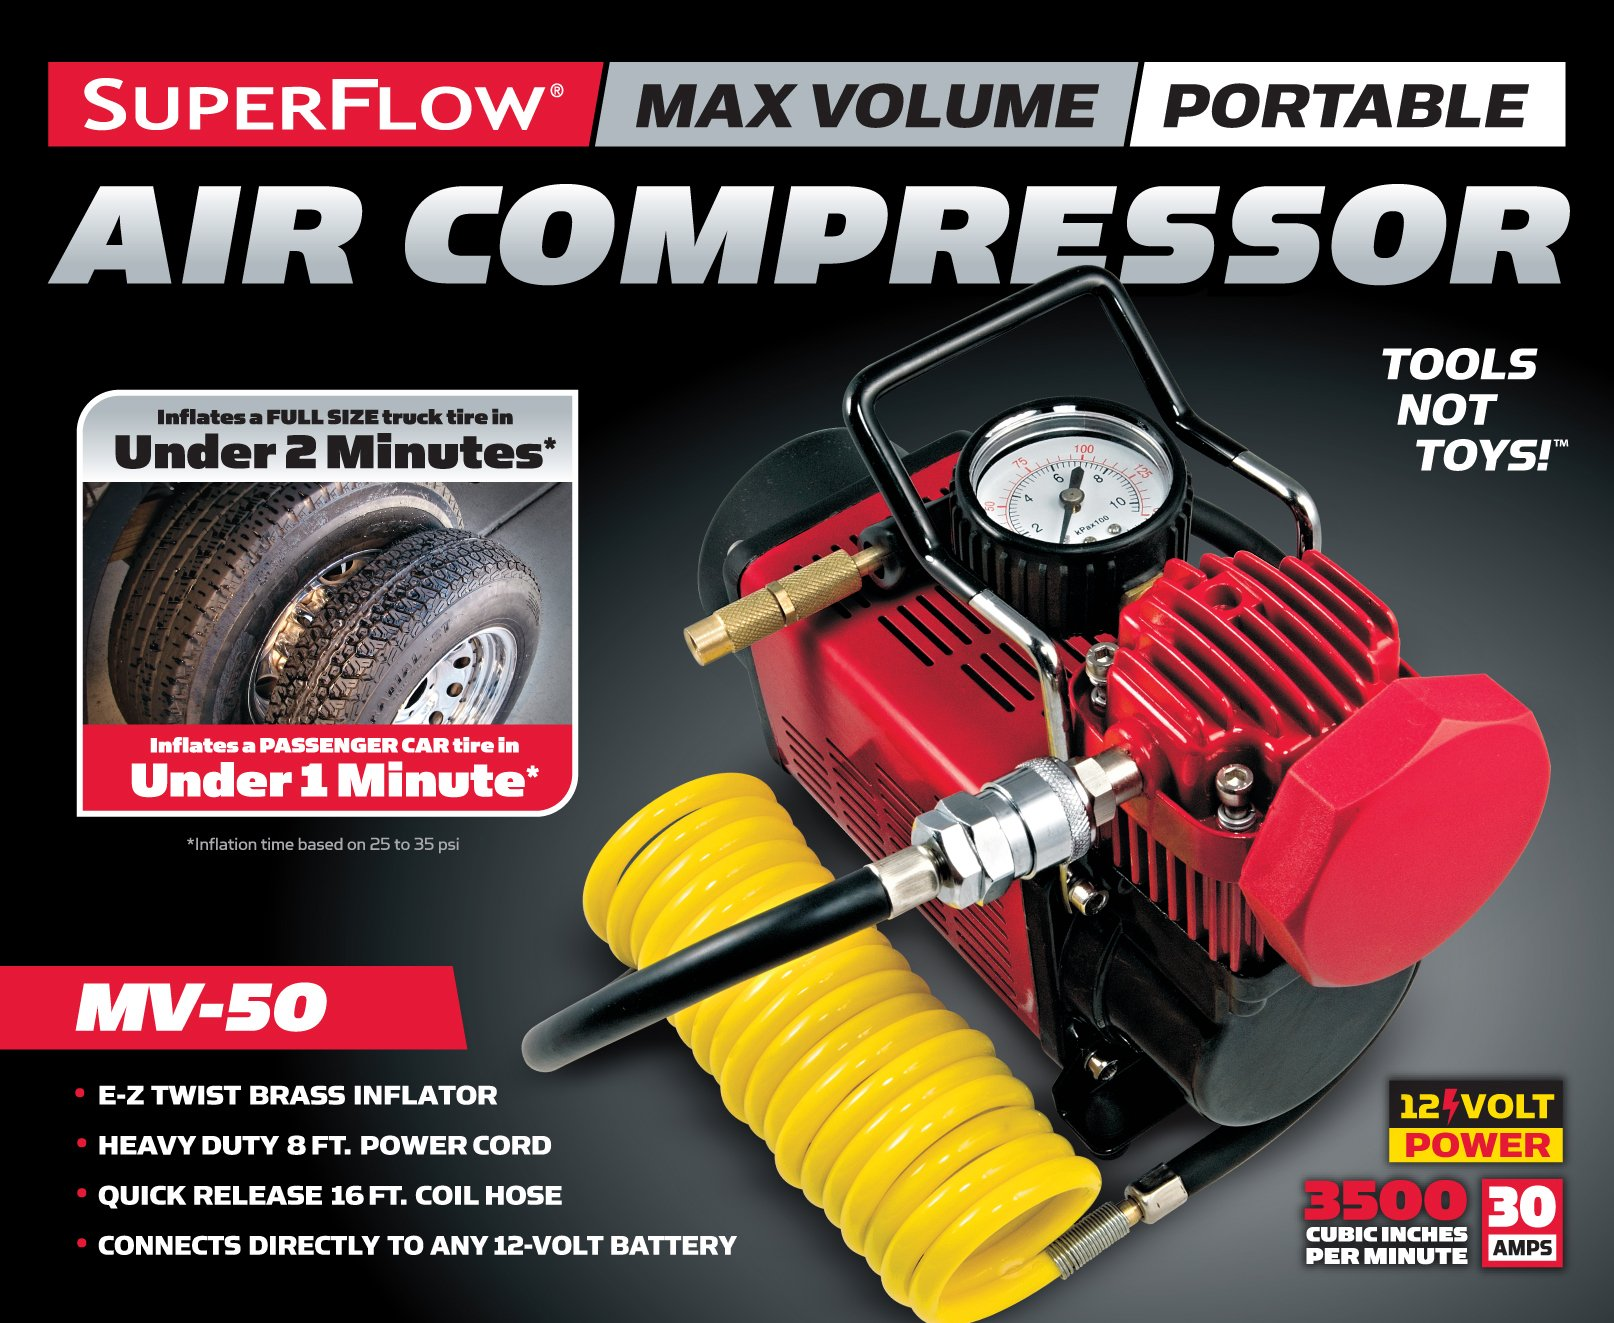 Q Industries 12 Volt Air Compressor, Portable Air Pump, 12 volt, Tire Inflator, MV-50 Air Compressor by SuperFlow for inflating full size 4 x 4, Jeep, truck, SUV and RV Tires by Q Industries (Image #3)